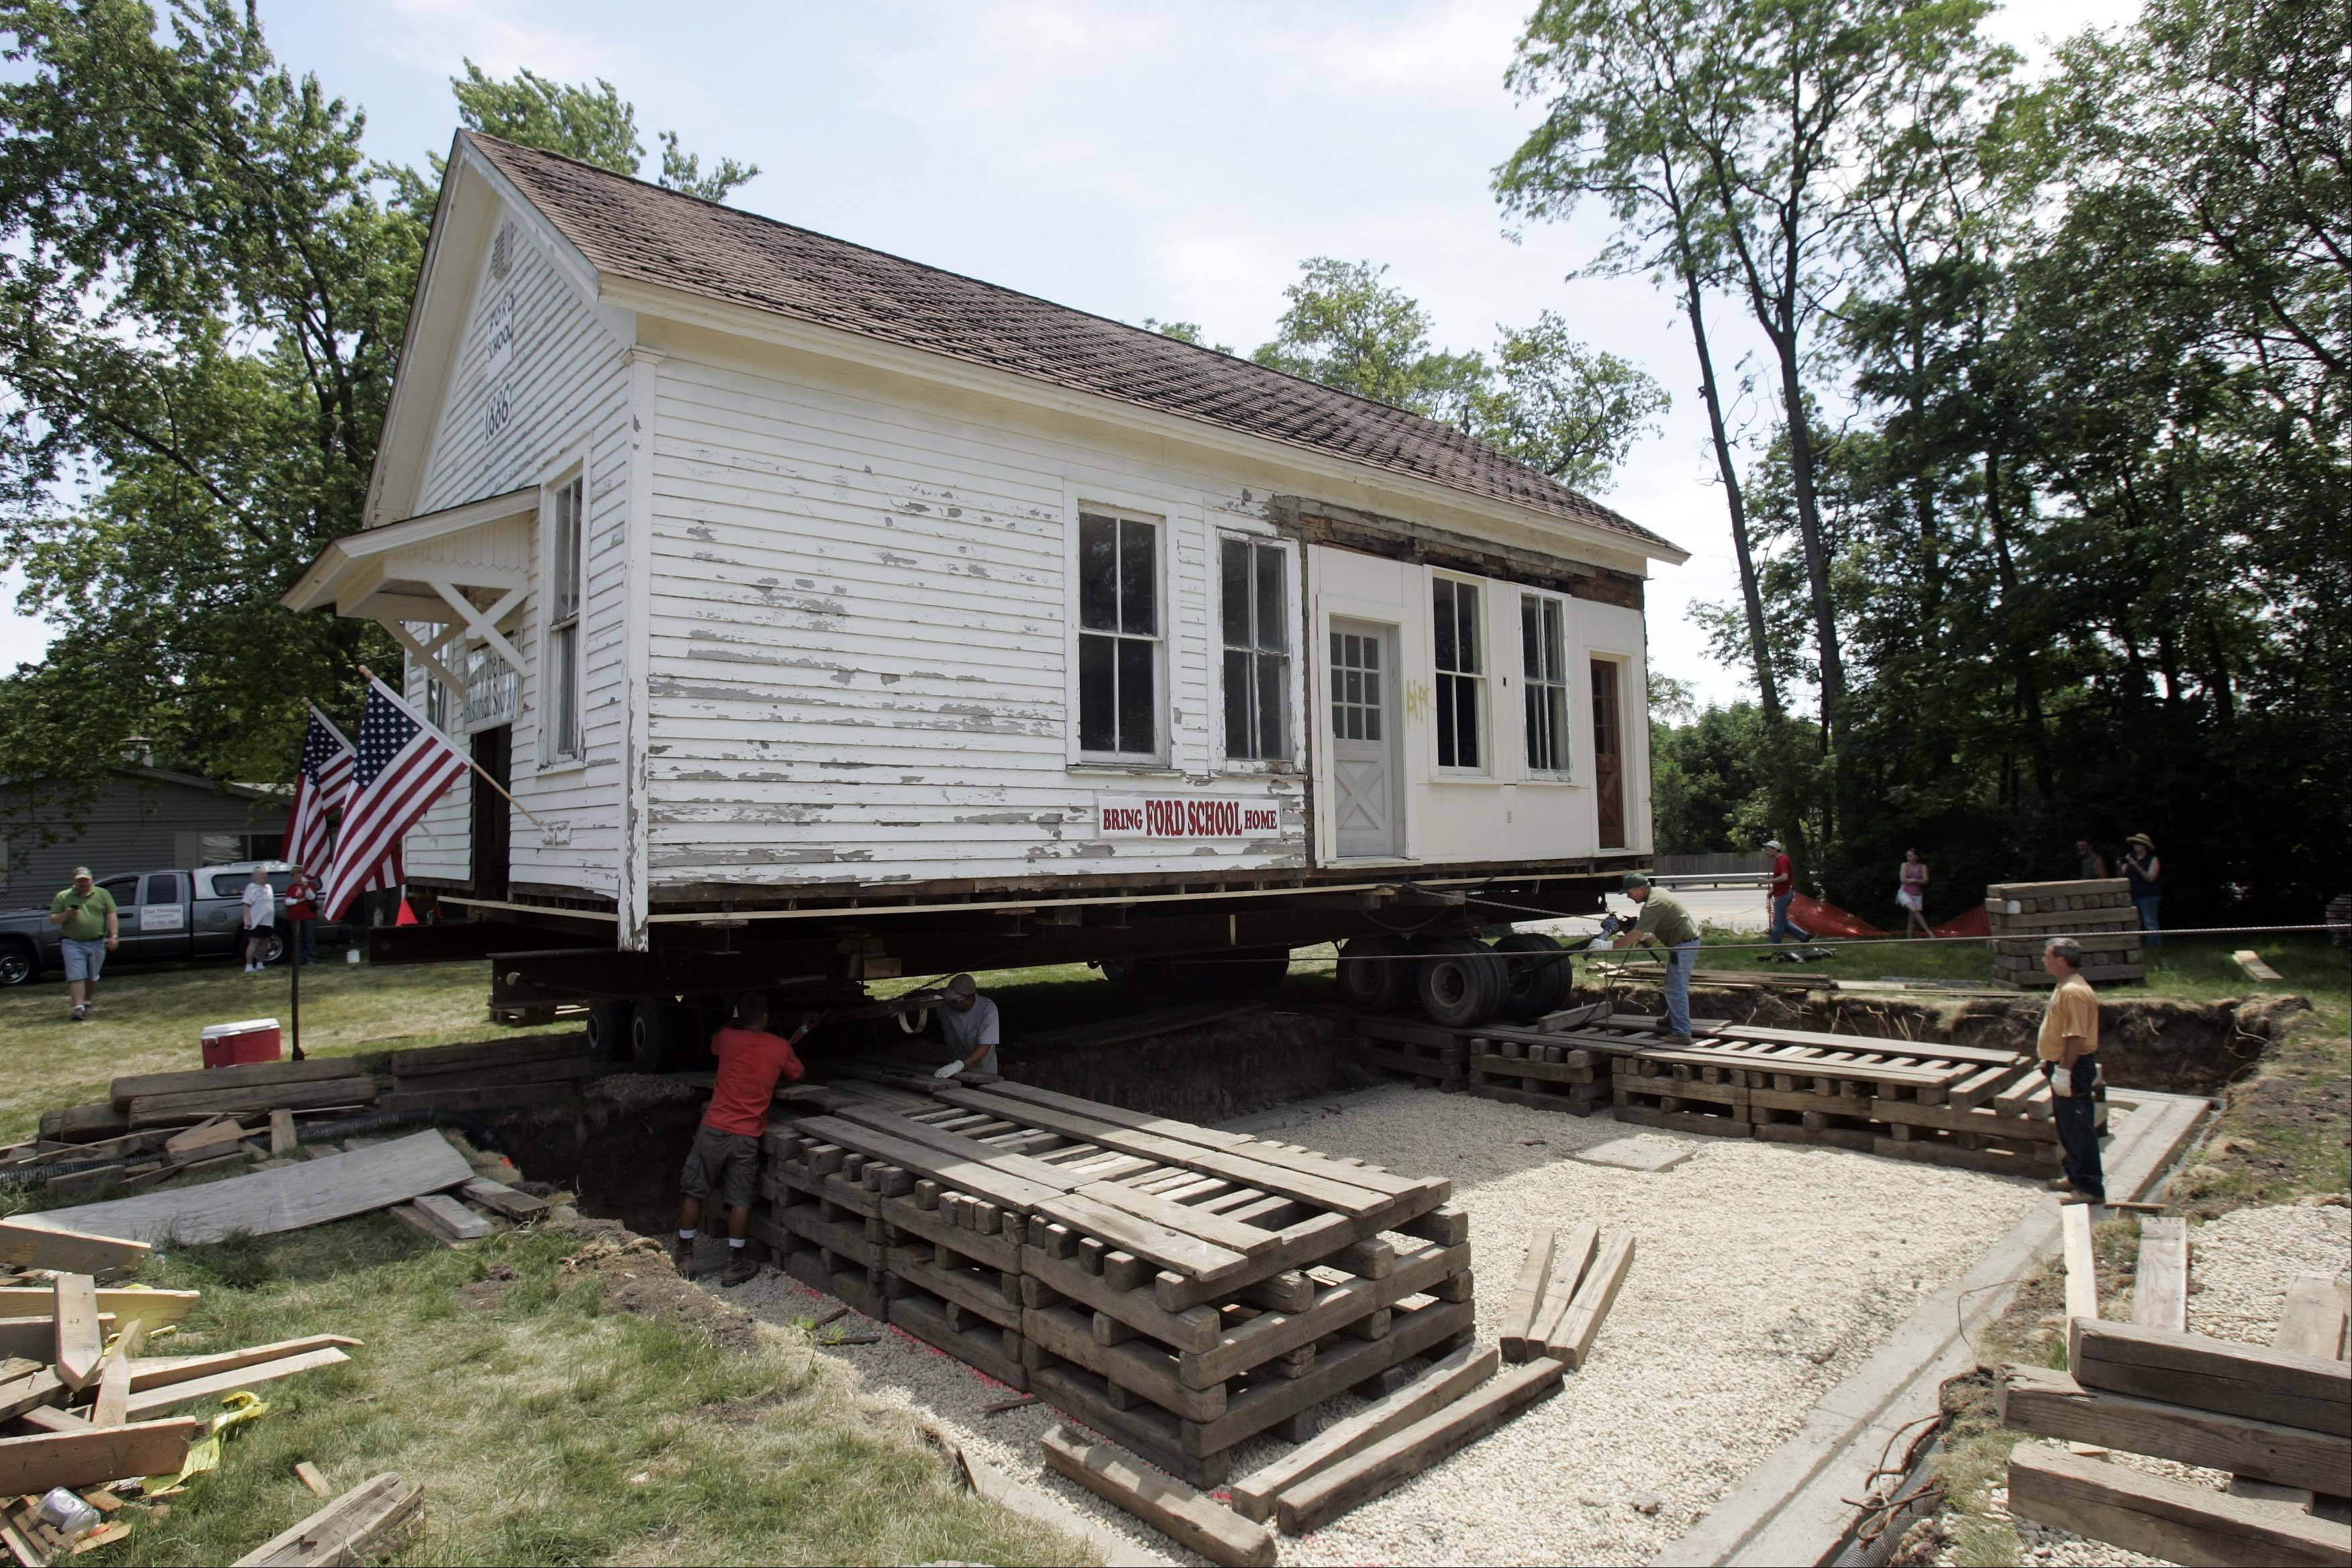 Lyle Hyatt & Co. Inc., of Sandwich, prepares to move the 20-foot by 3-foot, 22-ton Ford schoolhouse into its new location Friday.